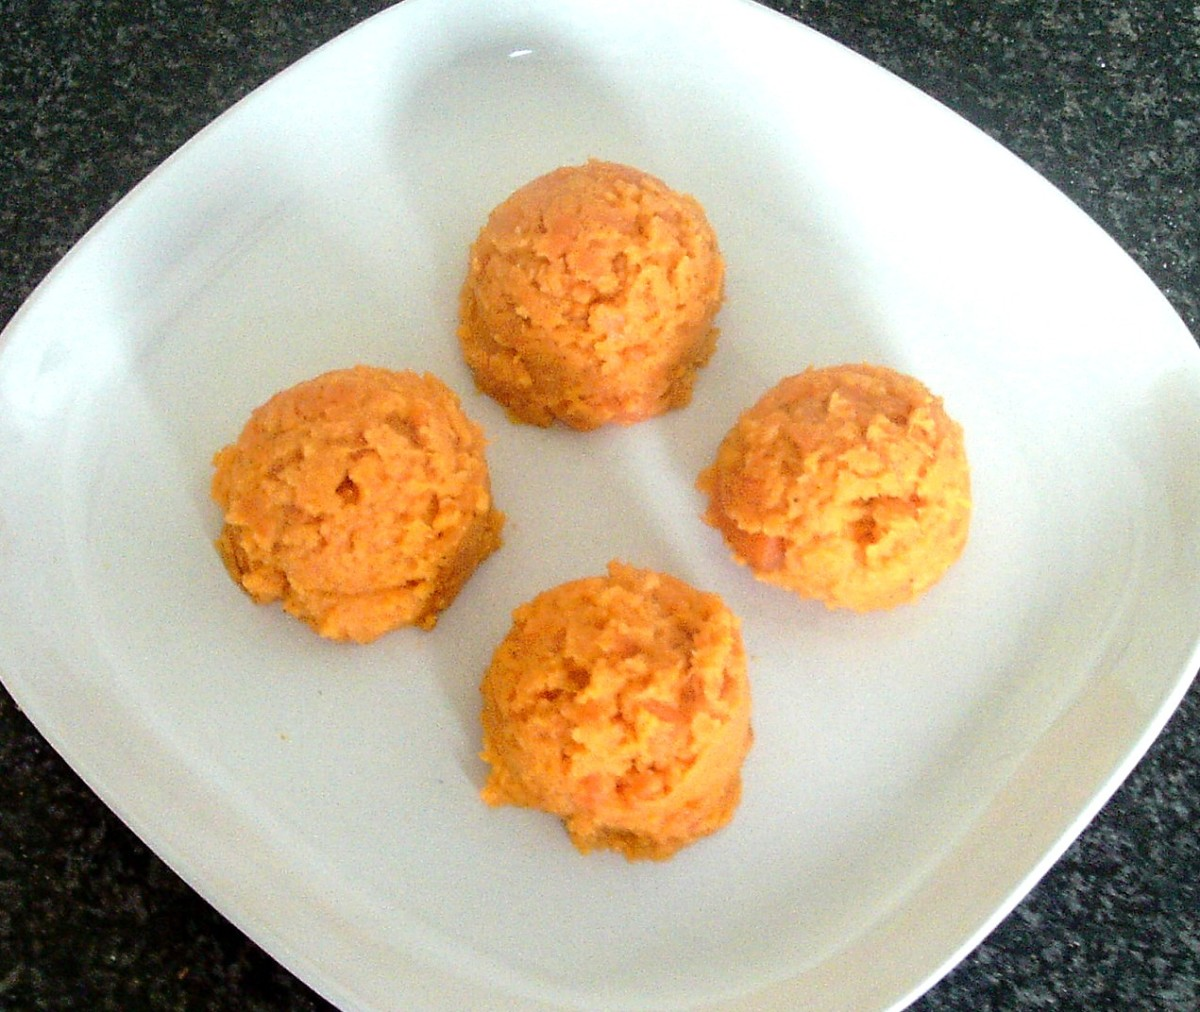 Scoops of sweet potato and carrot on serving plate